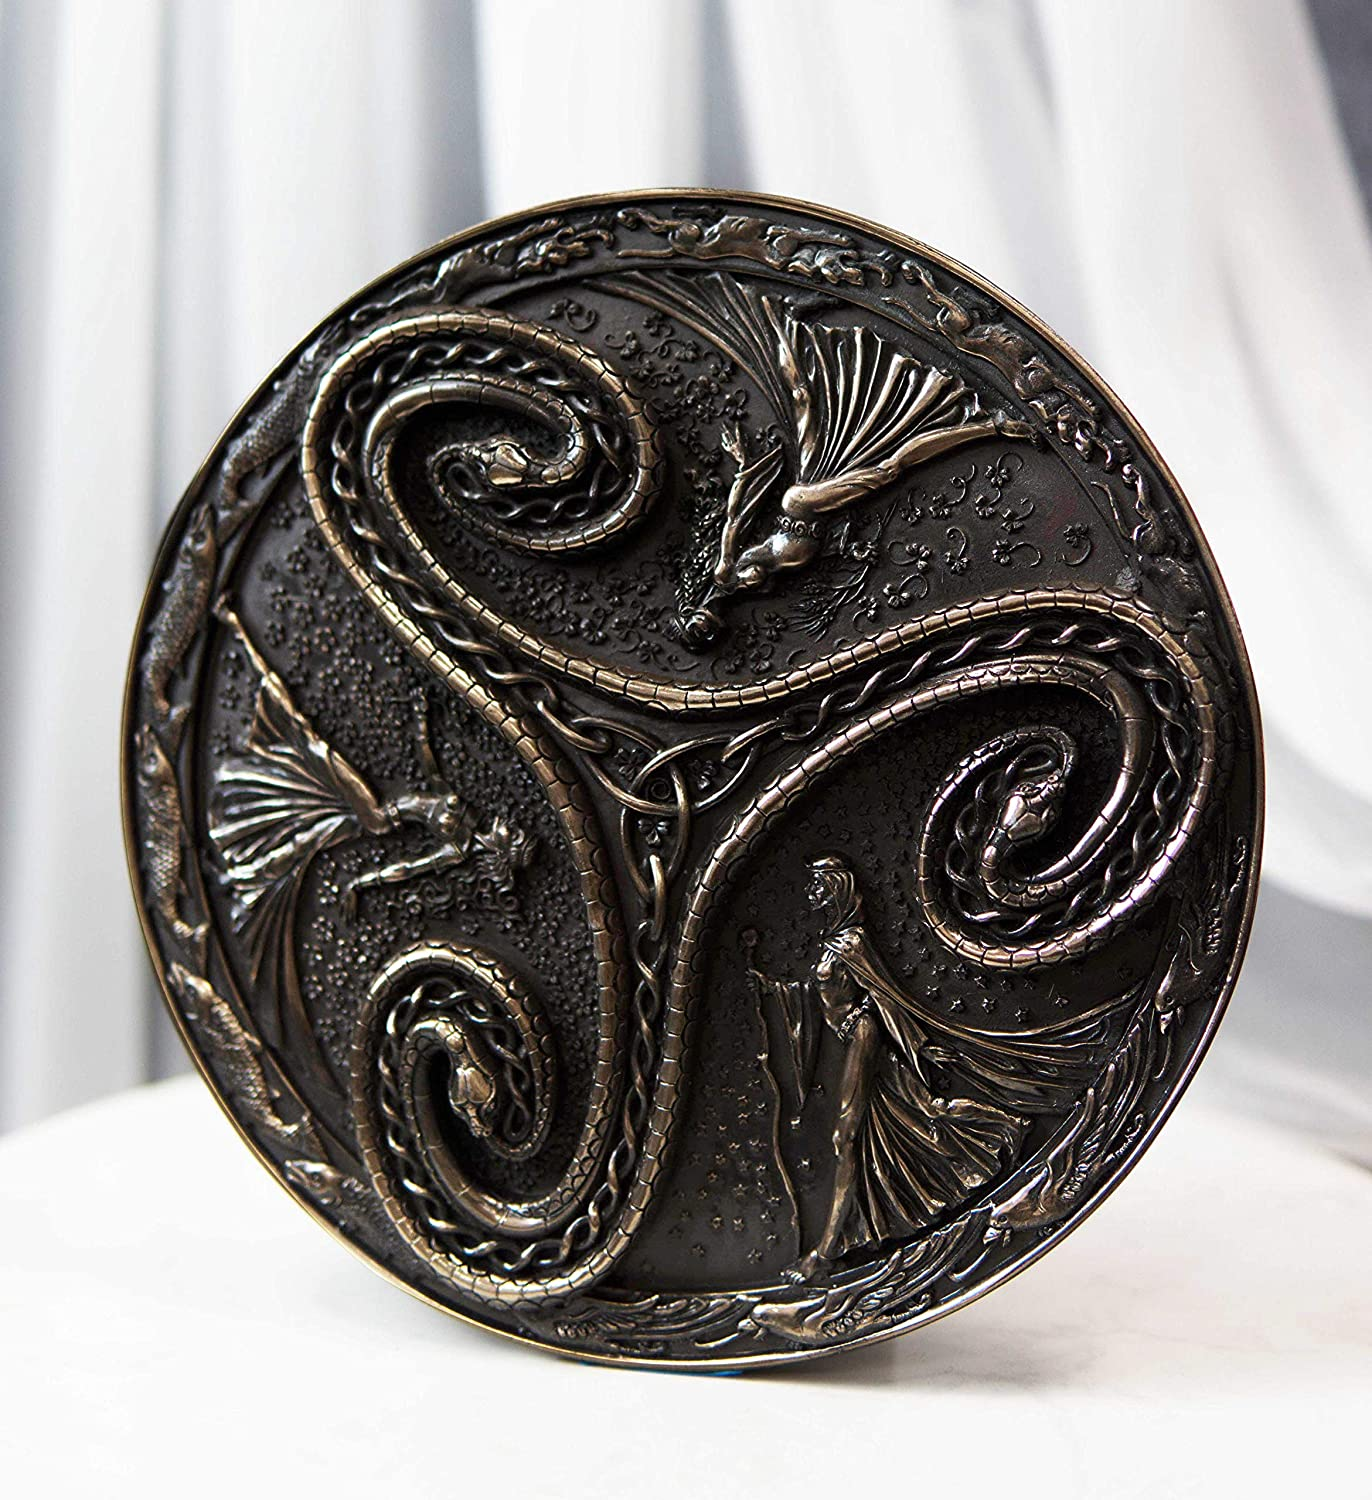 Ebros Gift Pagan Wiccan Triple Goddess Triskele Spiral Serpent In Rune Circle Wall Plaque Decor Celtic Trinity Knotwork Maiden Mother Crone Symbol Of Feminism Home Kitchen